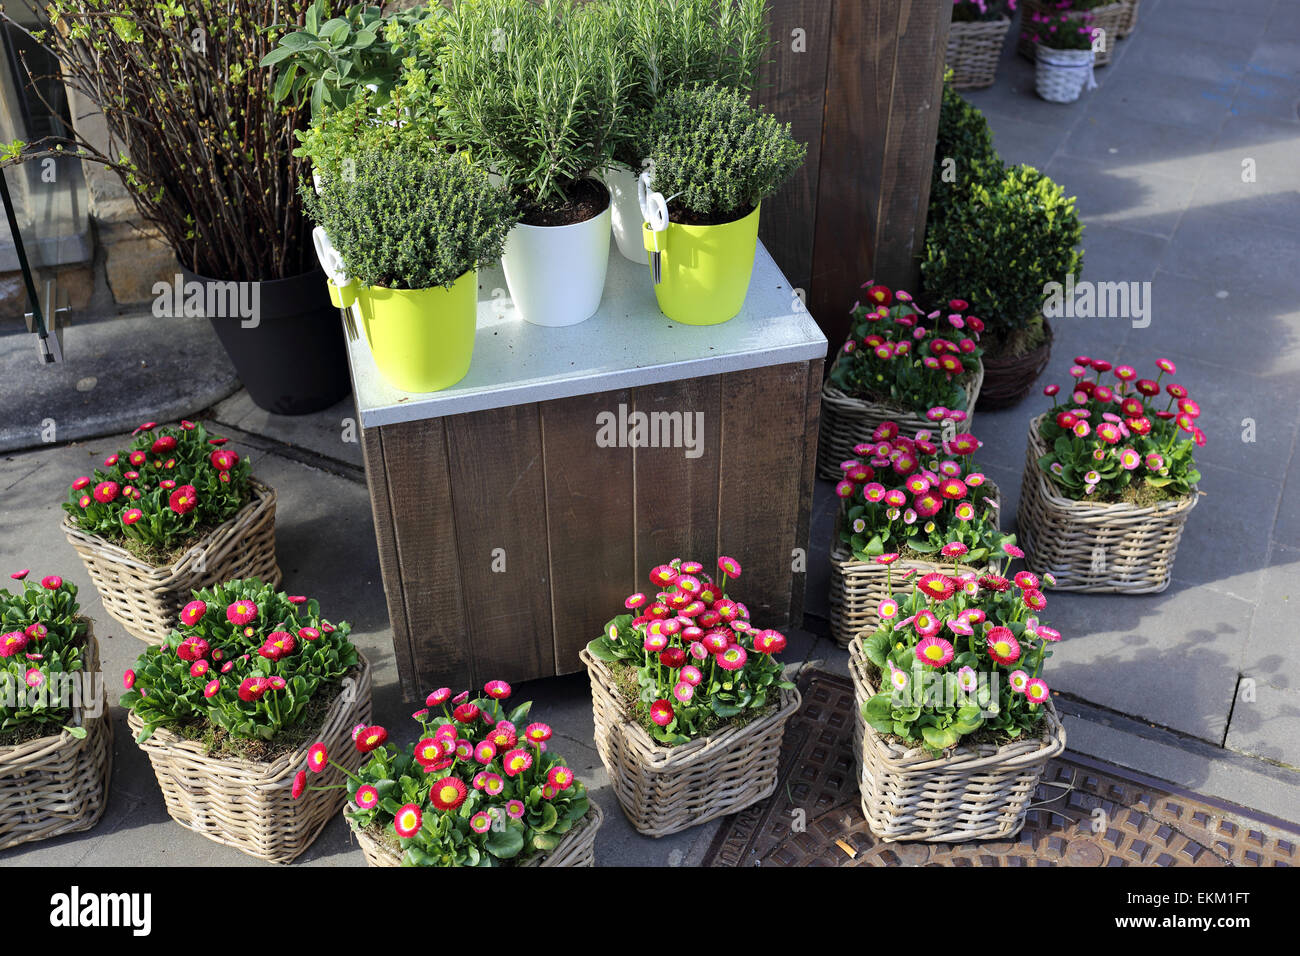 Flower stand - Stock Image